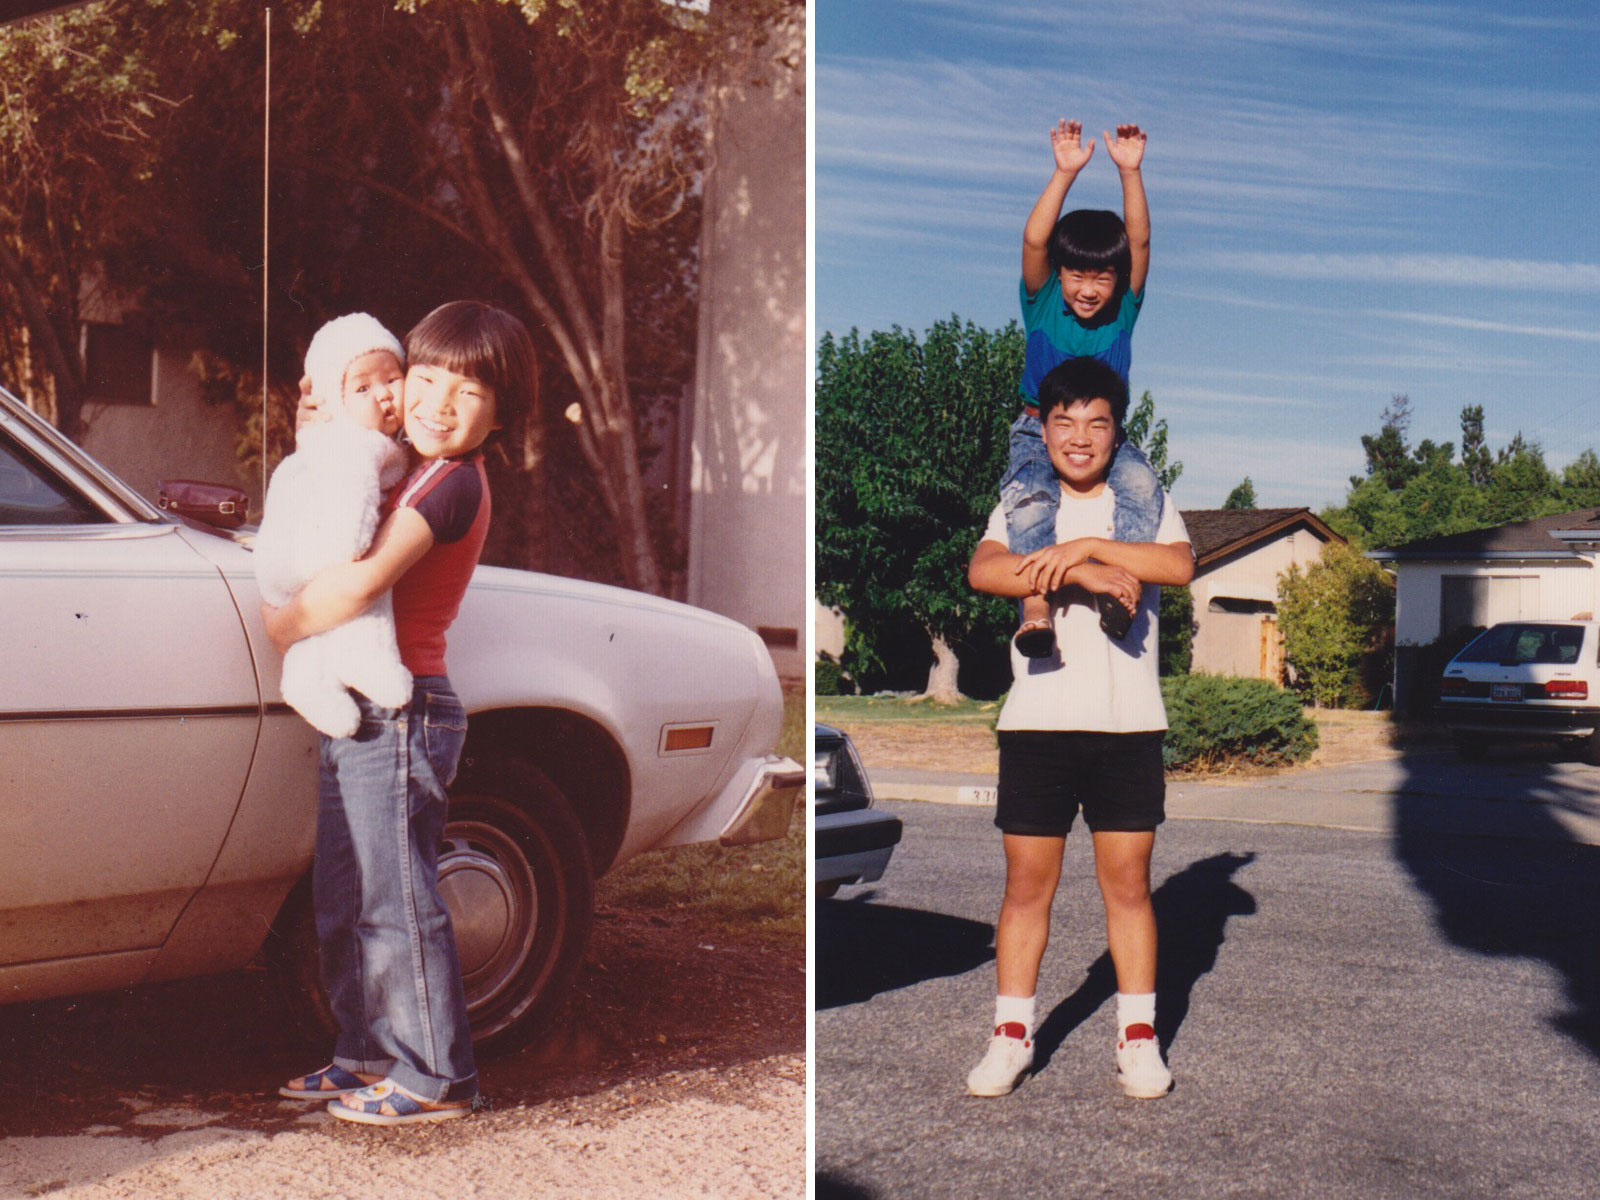 Me and my little brother growing up. Look at those shorts! Lol